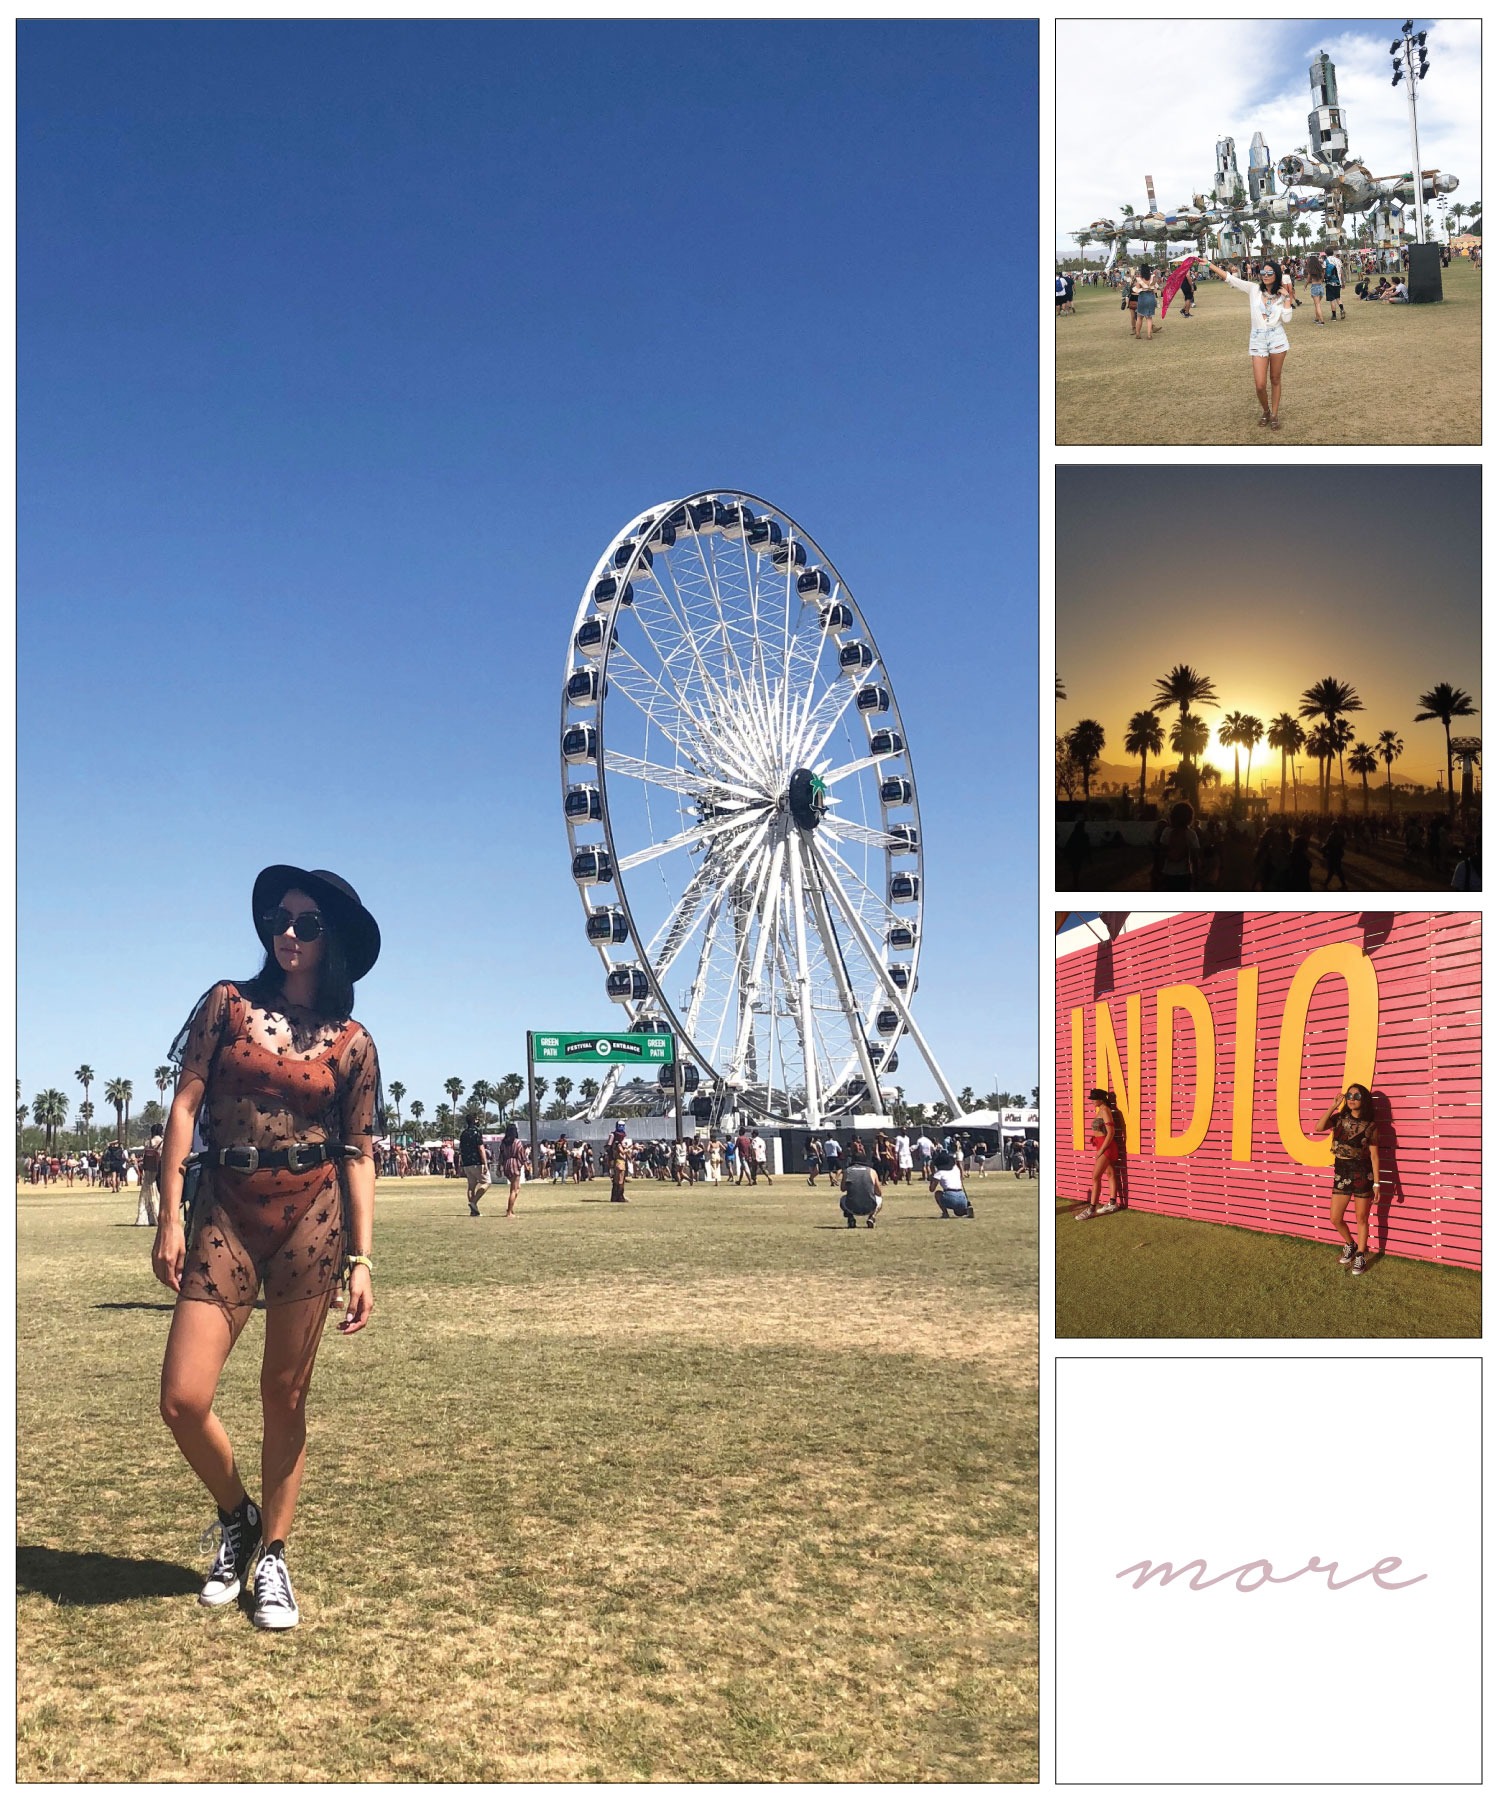 Finally had the opportunity to go to Coachella, thanks to bae 👩‍❤️‍💋‍👨We went with a large group of friends, which made the experience that much more fun!